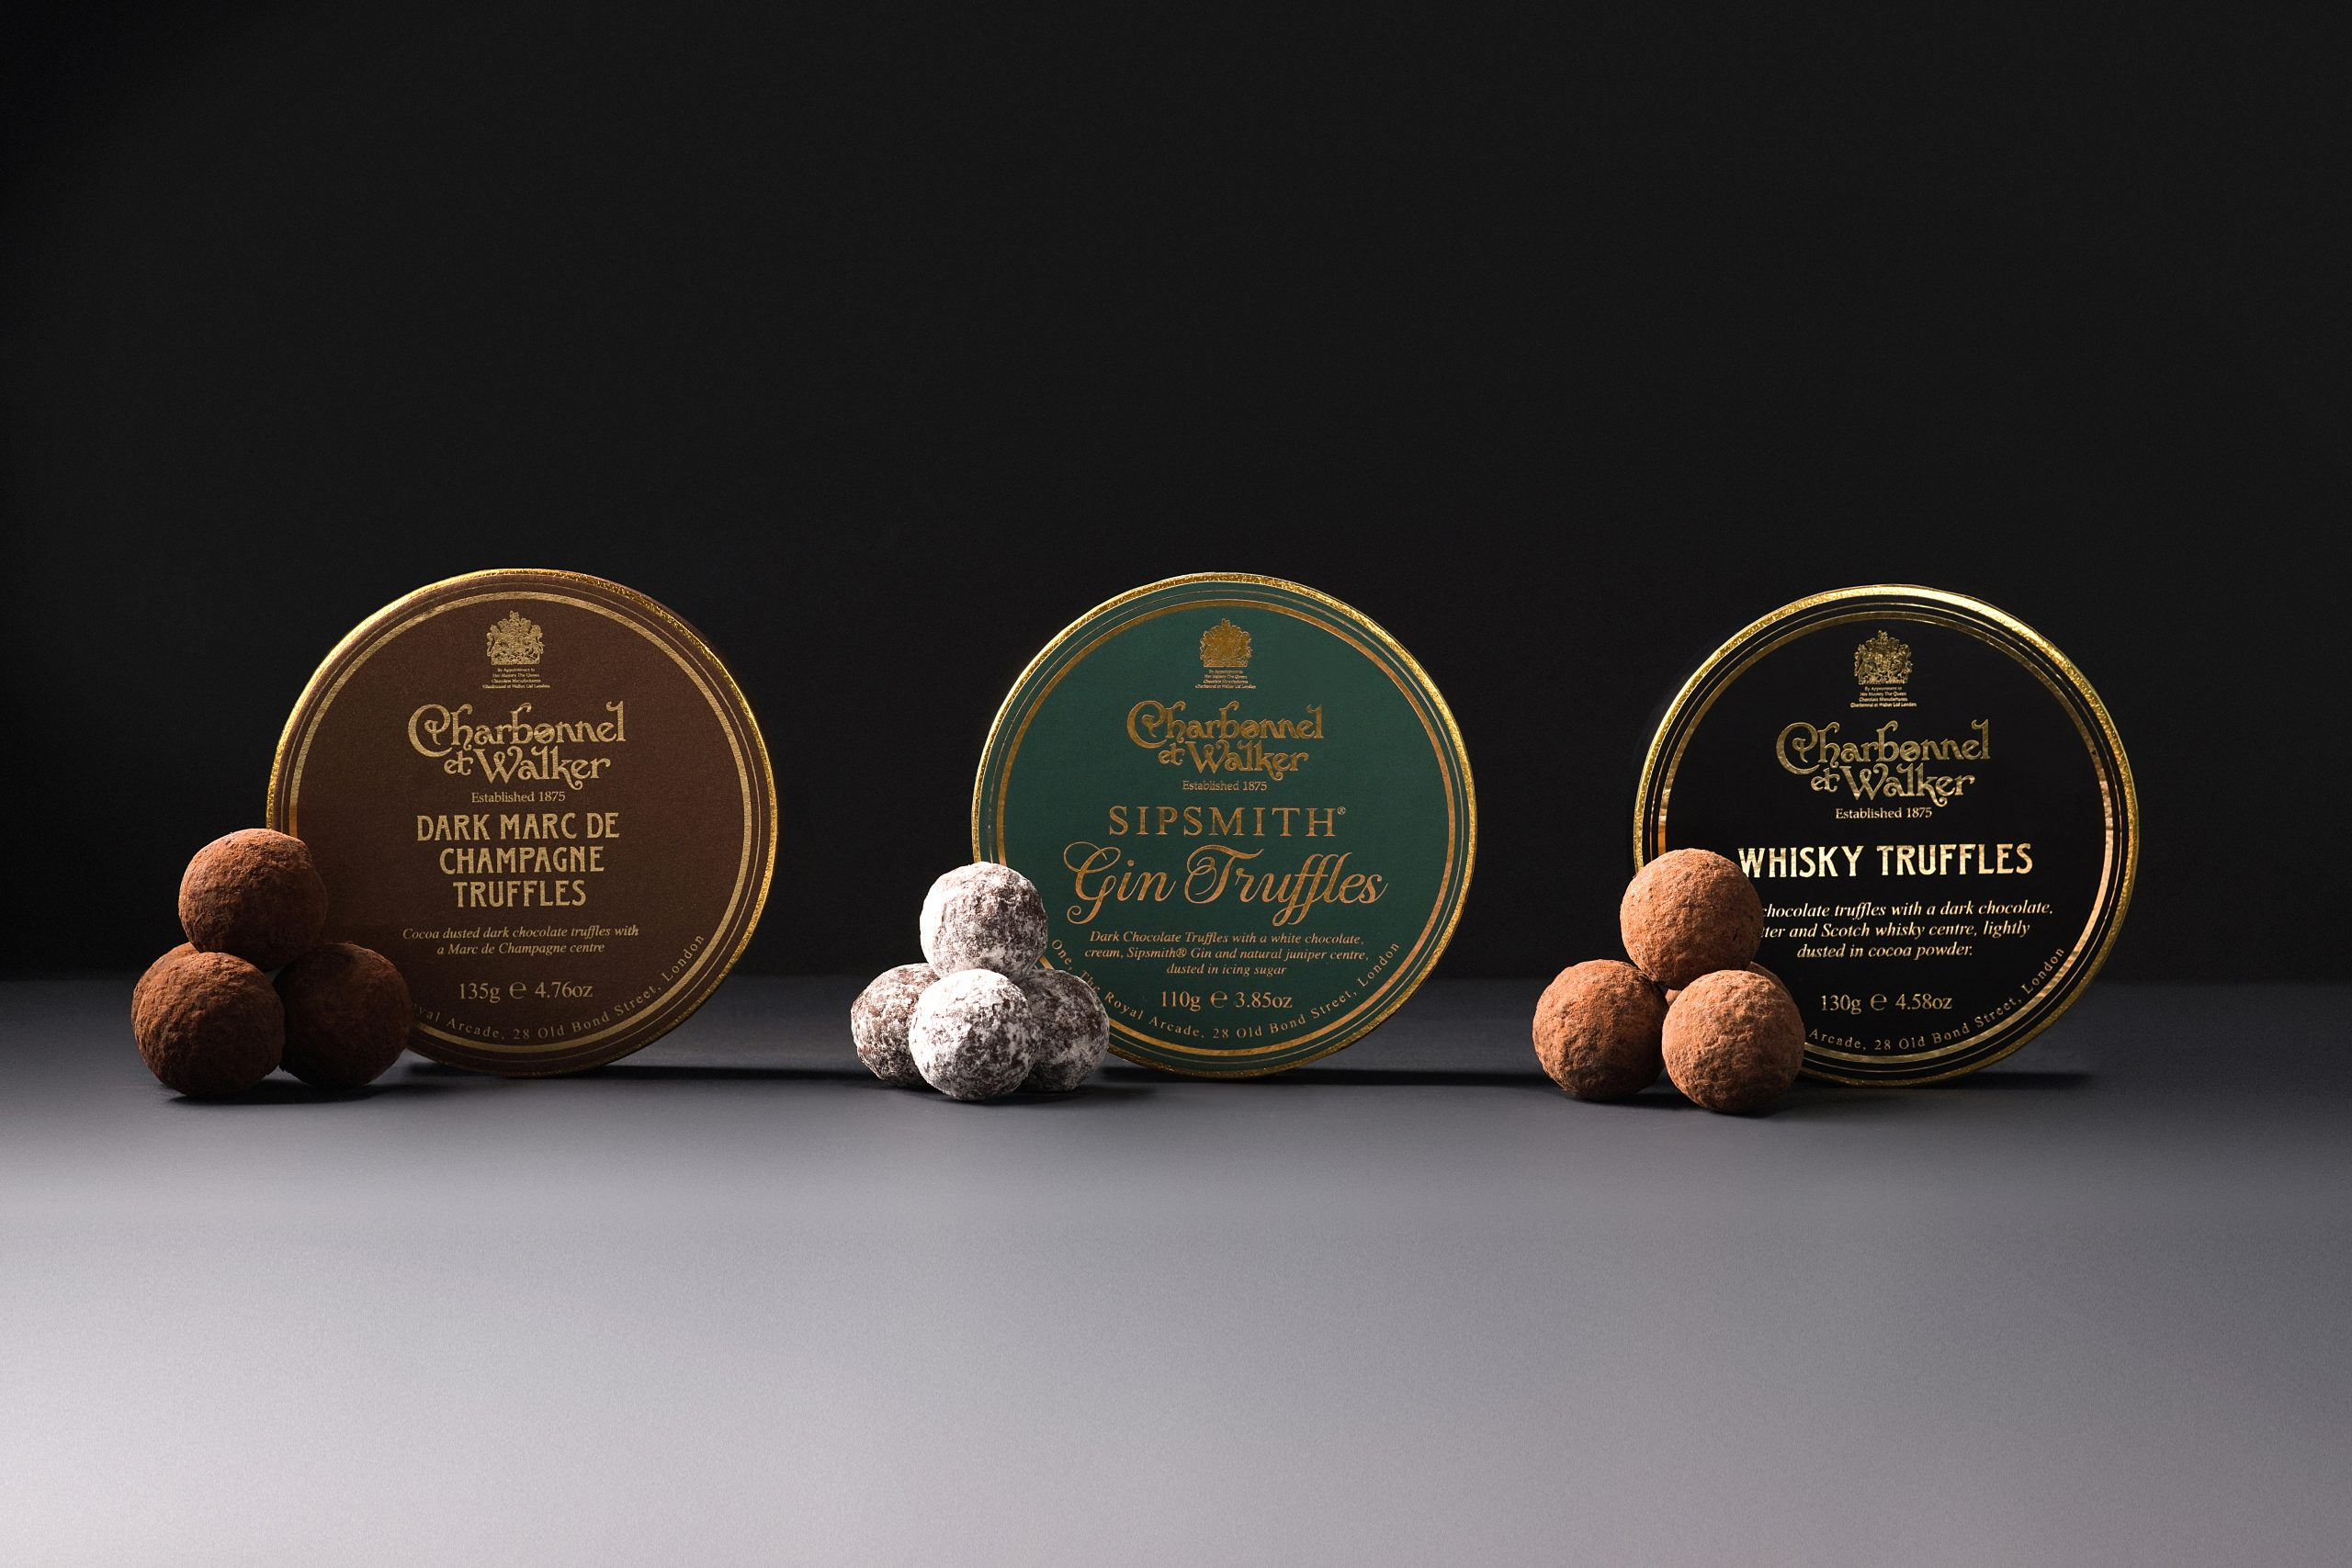 Father's Day 2021 chocolates by charbonnel et walker